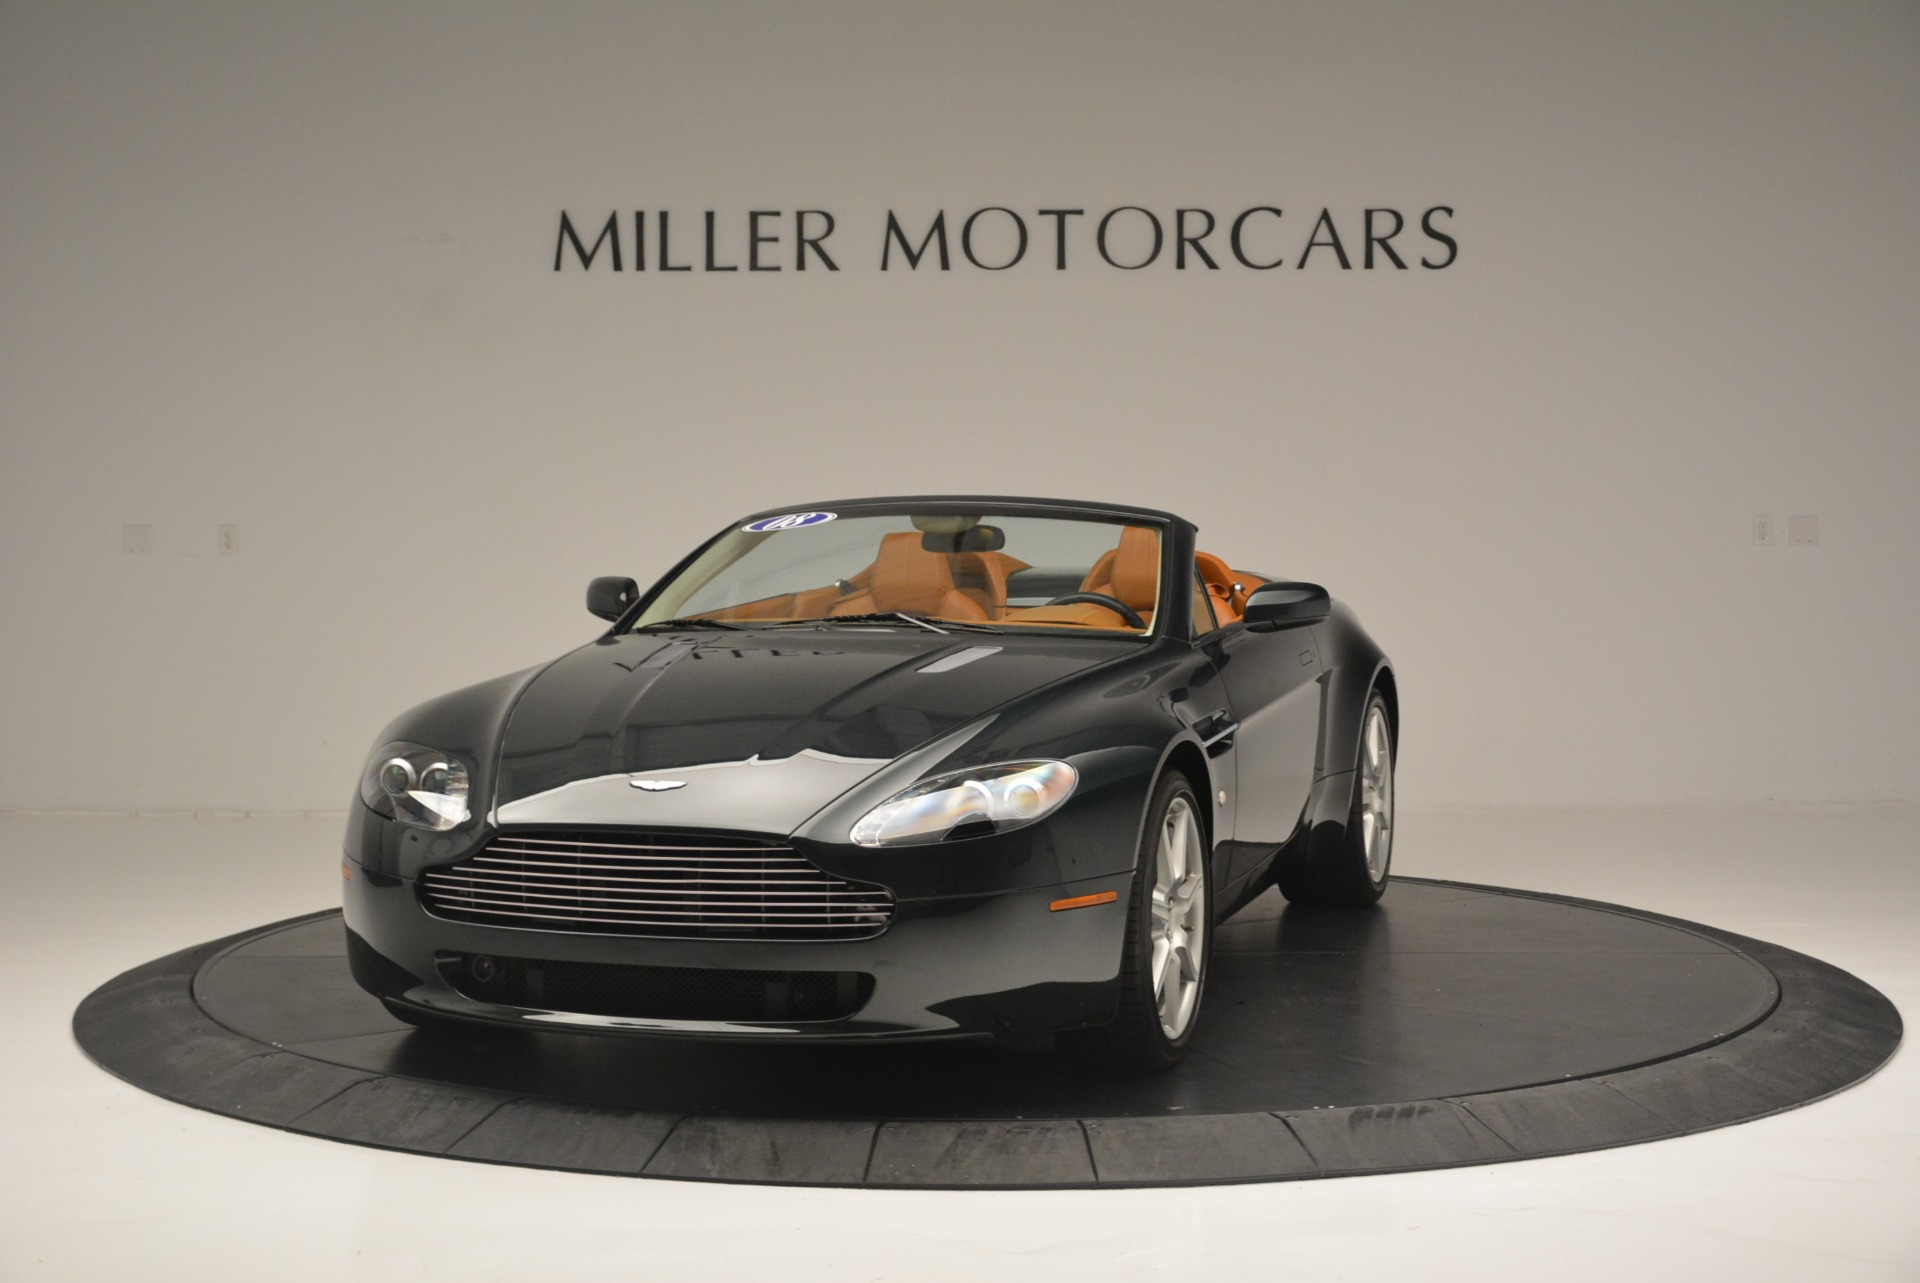 Used 2008 Aston Martin V8 Vantage Roadster for sale Sold at McLaren Greenwich in Greenwich CT 06830 1